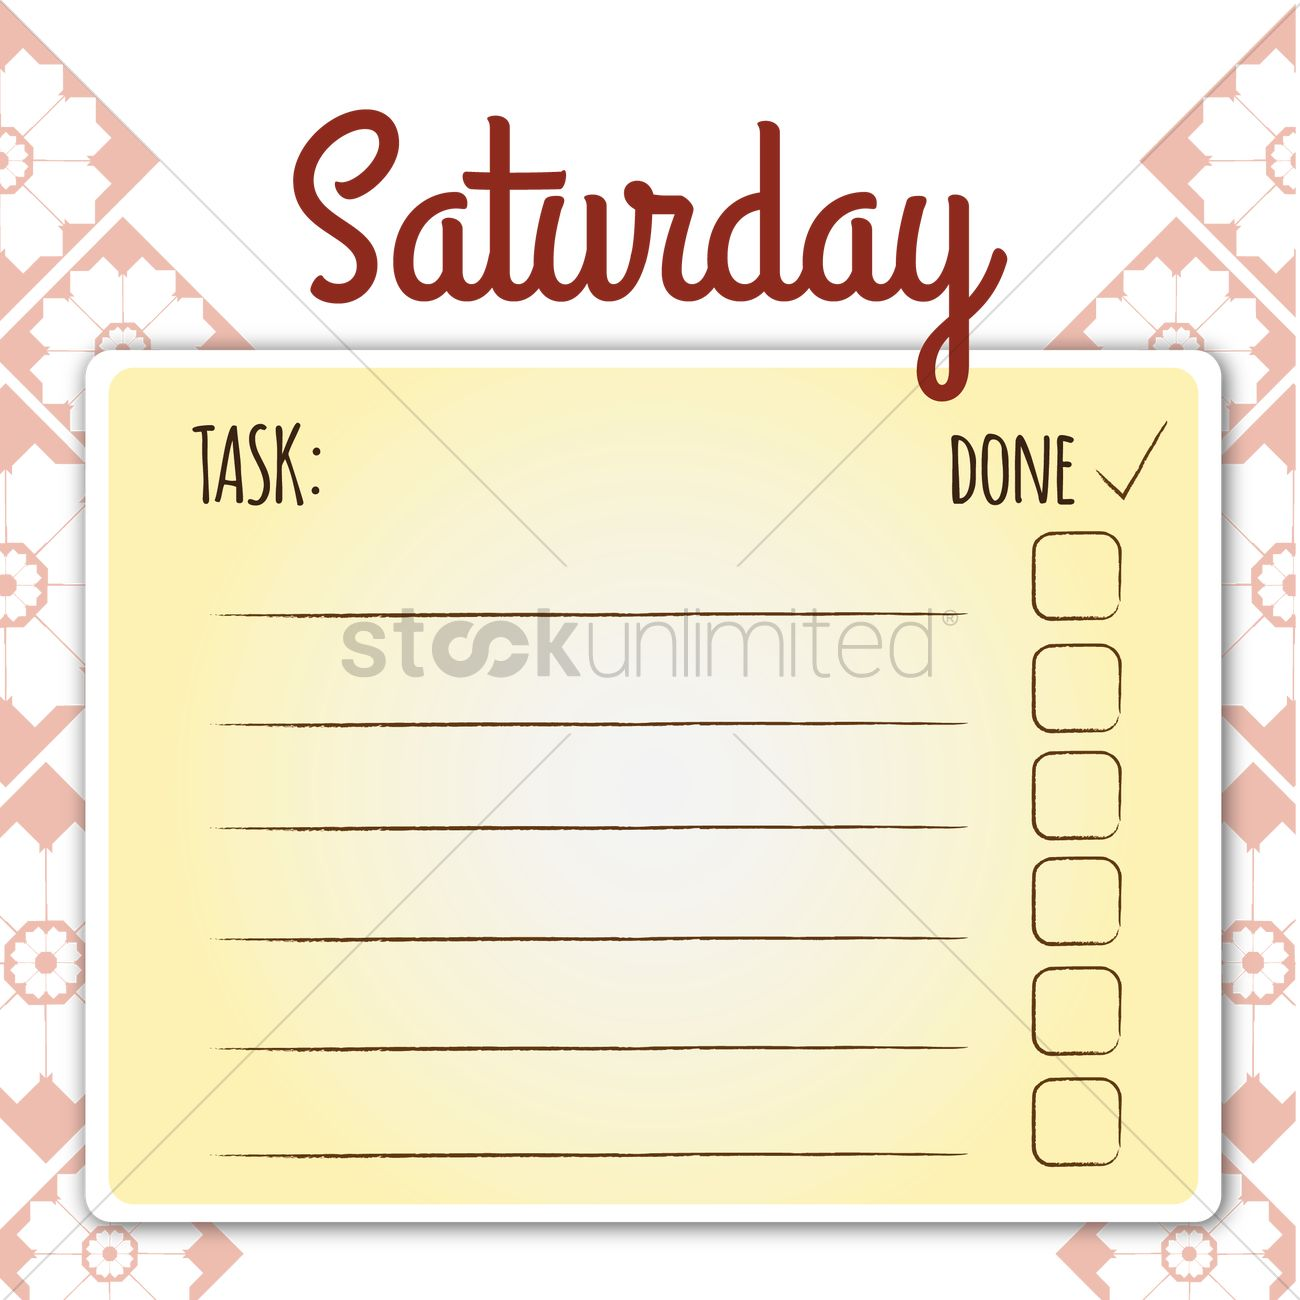 blank daily checklist template vector image - 1480055 | stockunlimited